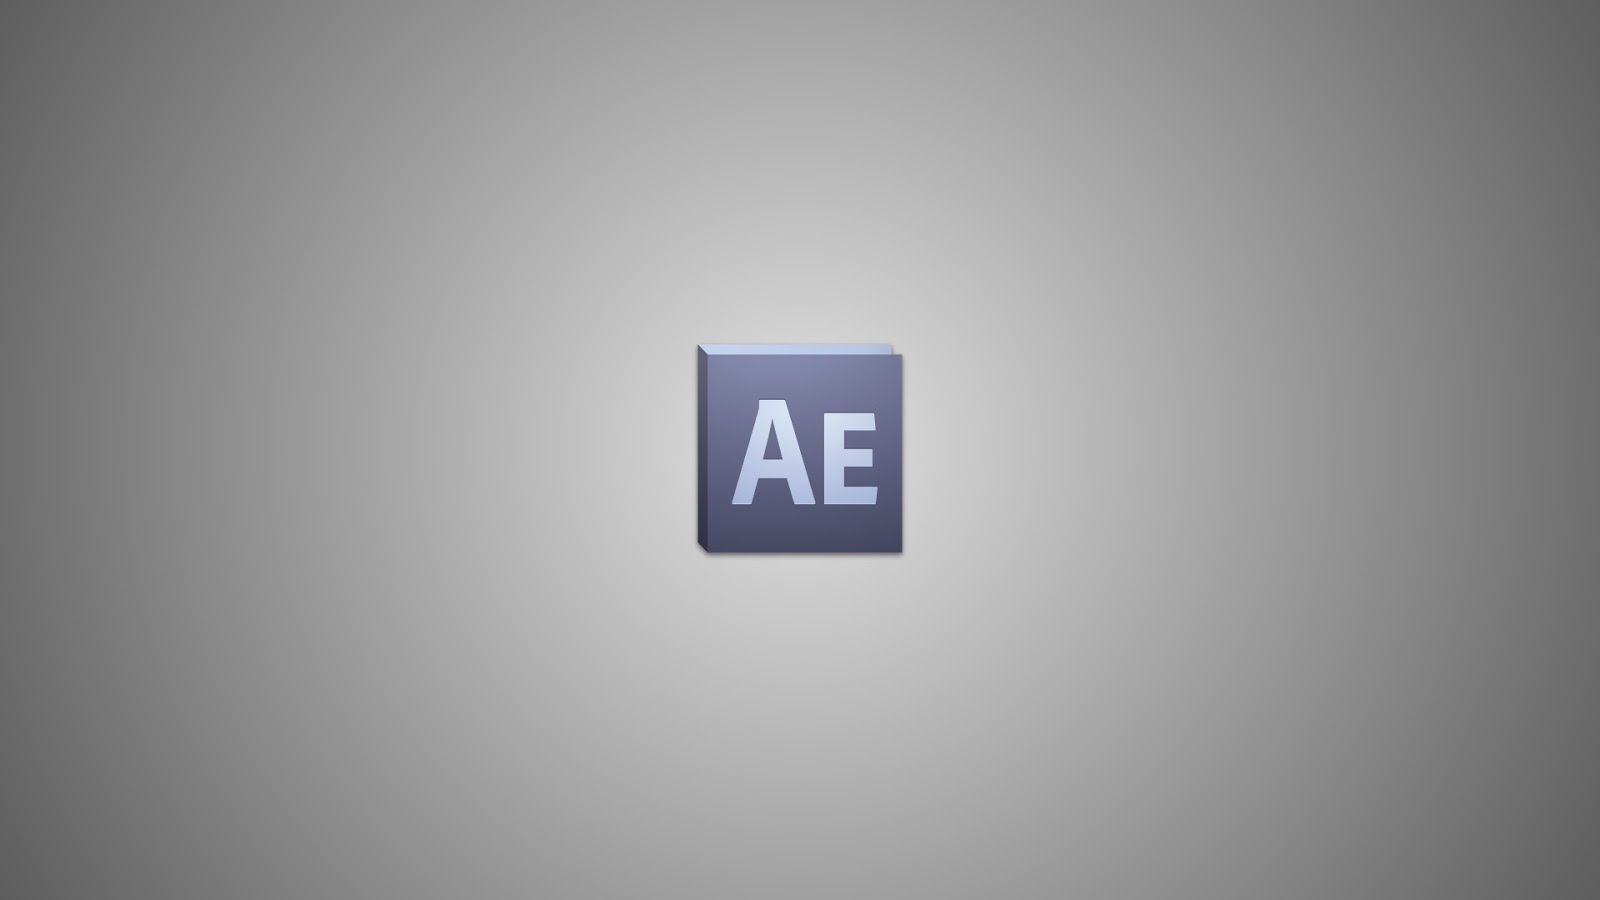 Adobe After Effects Cs4 Keygen